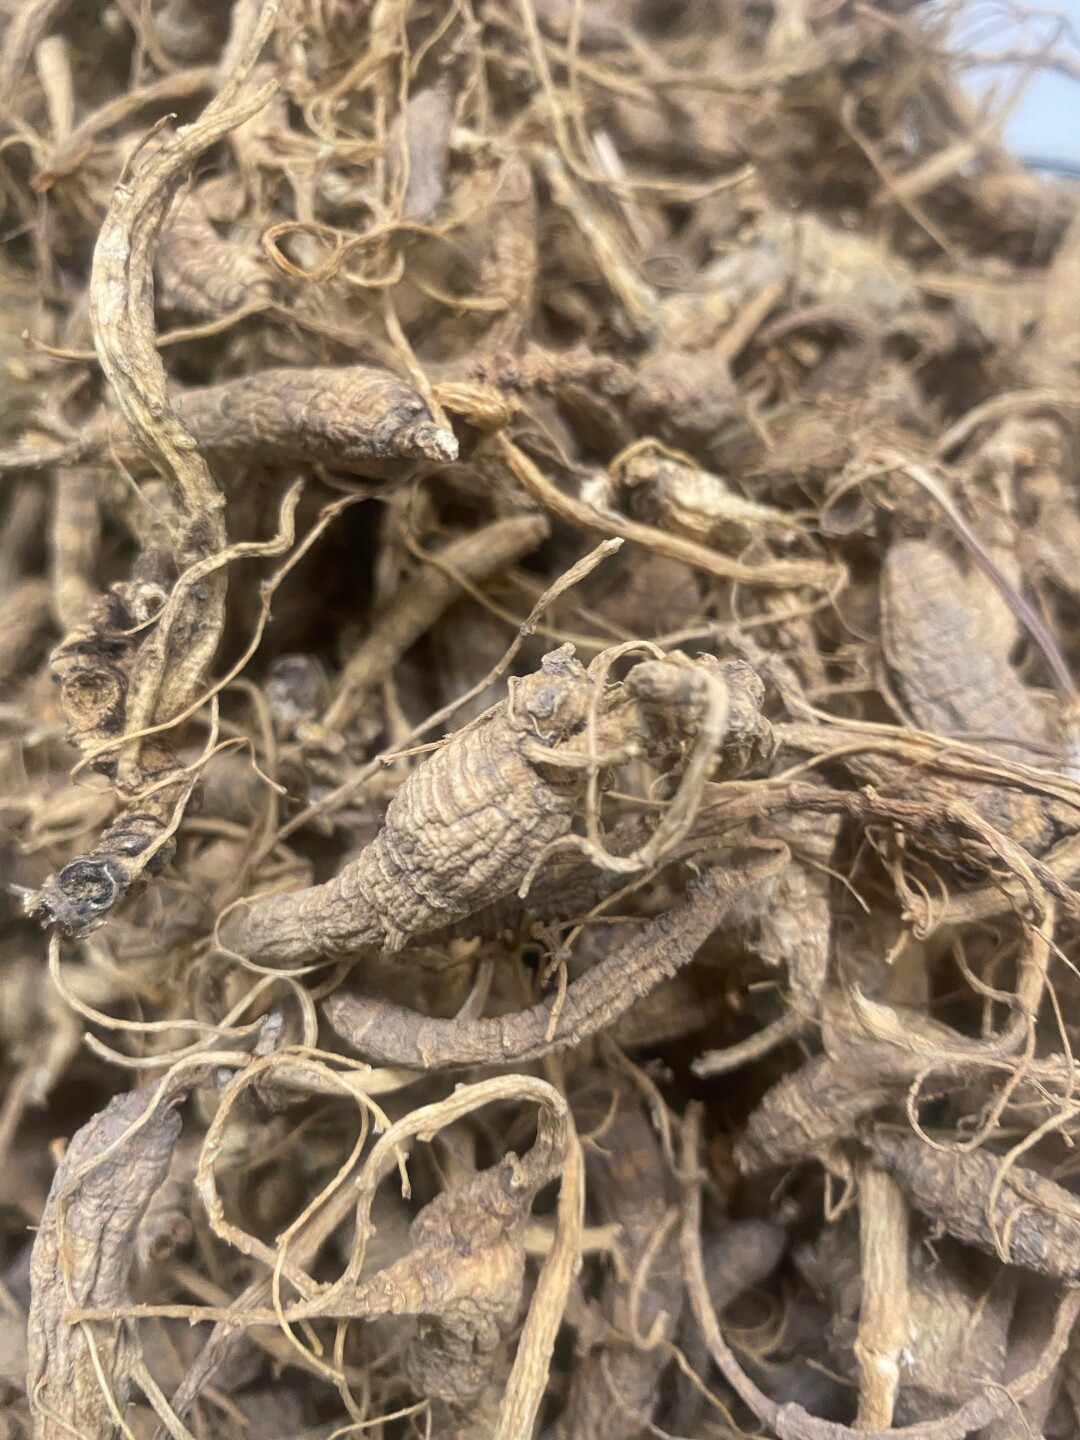 Dried ginseng